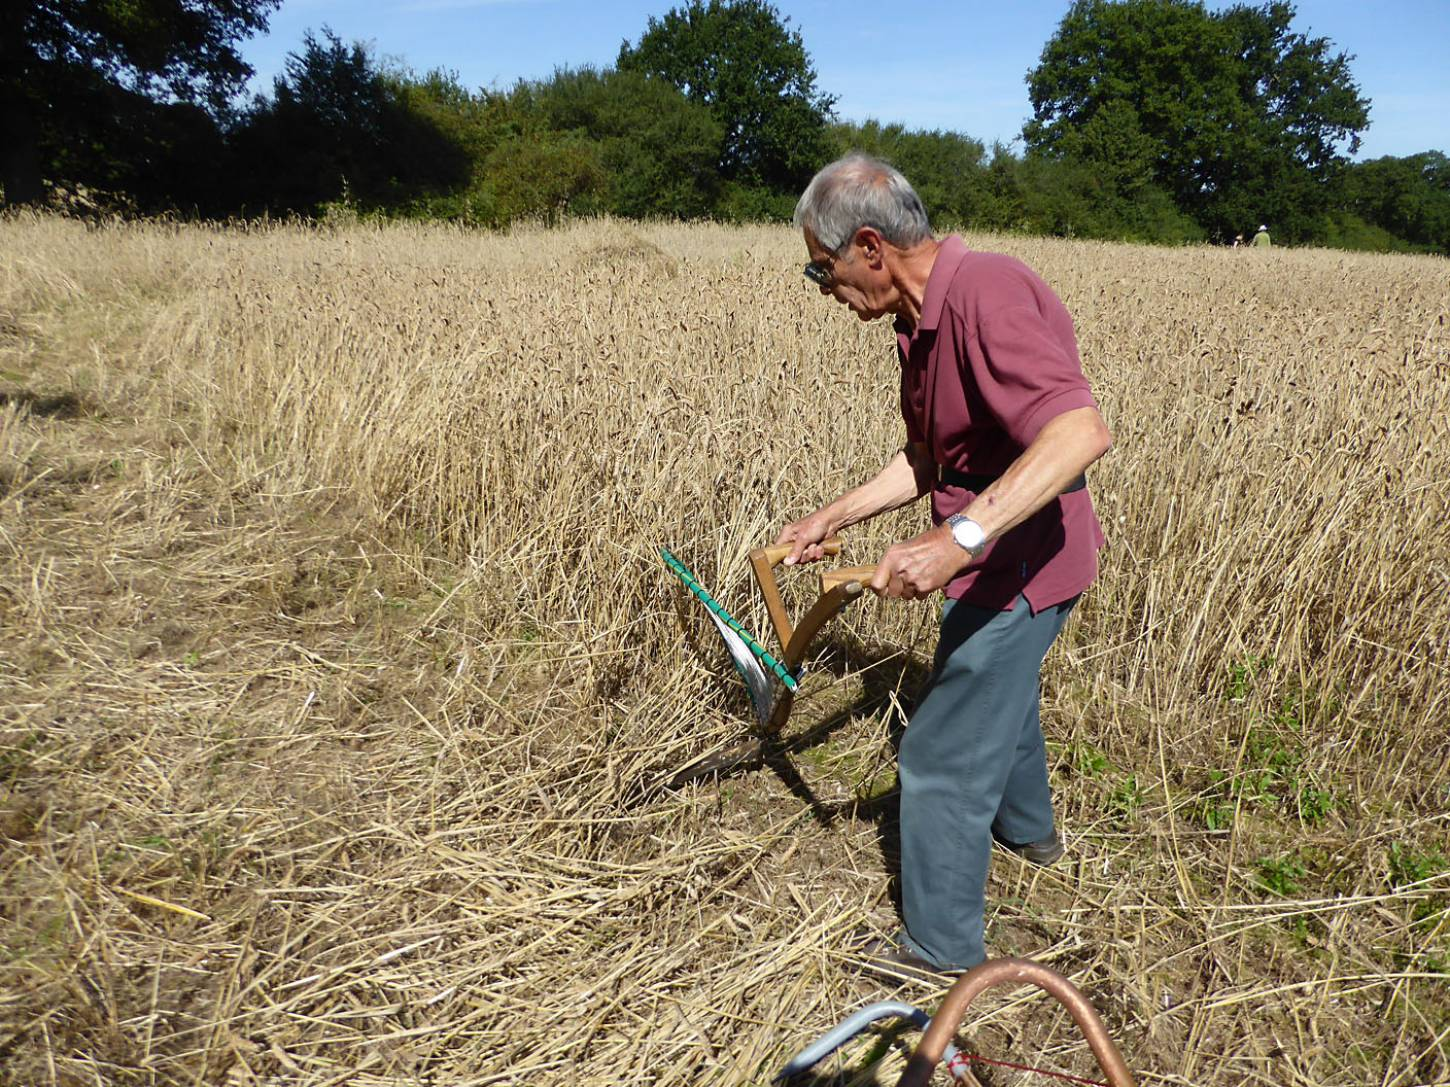 Chris Matcham in action with his version of wheat cradle, our manual harvest at Lodge Farm - 11:04am&nbsp;13<sup>th</sup>&nbsp;Aug.&nbsp;'17  <a href='http://maps.google.com/?t=h&q=51.208139,-0.086414&z=18&output=embed' target=_blank><img src='http://www.brockwell-bake.org.uk/img/marker.png' style='border:none;vertical-align:top' height=16px></a>